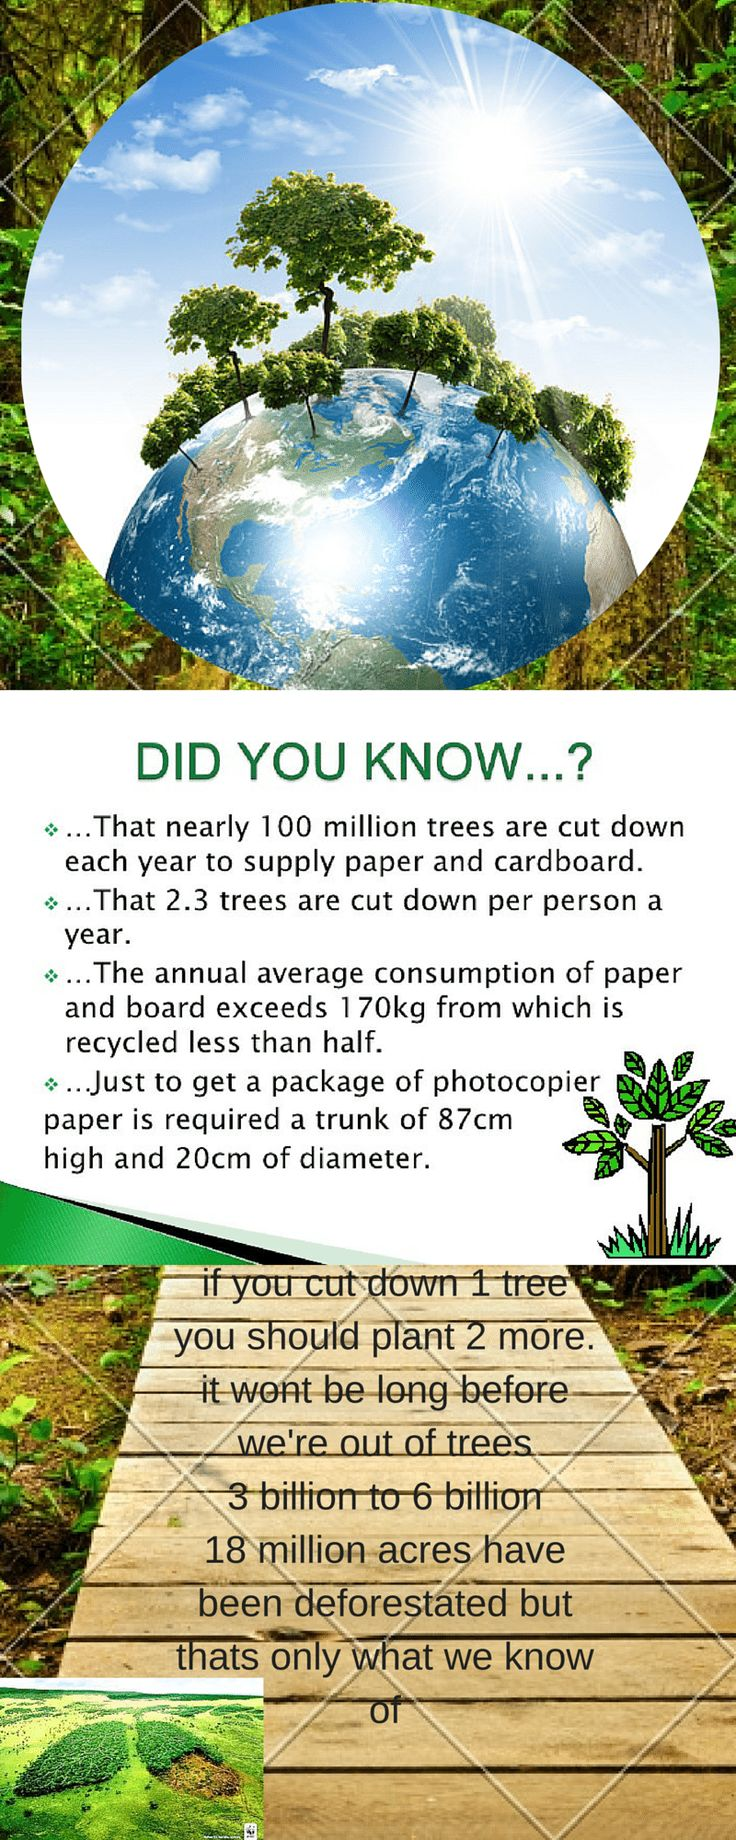 save the trees if you cut down 1 tree you should plant 2 more. it w...